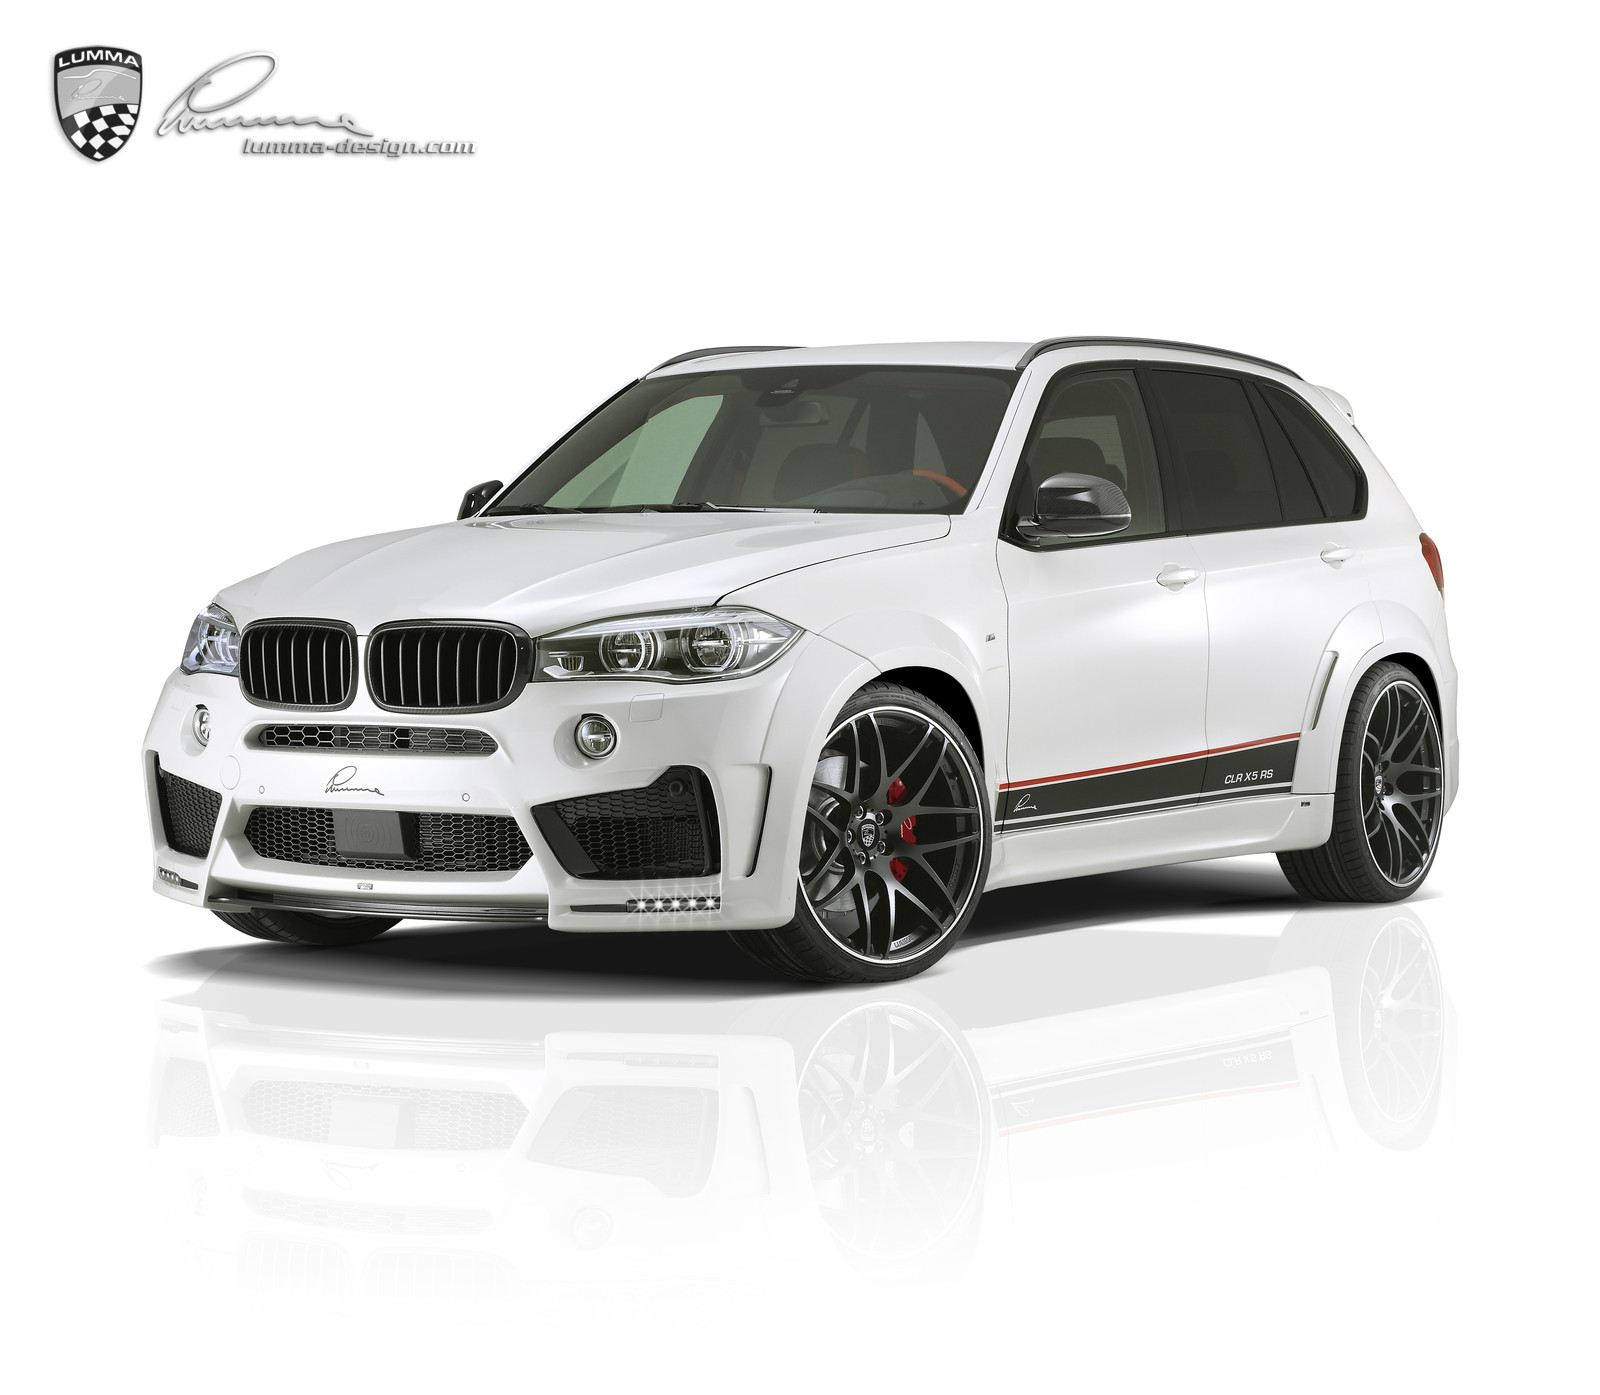 Bmw Xs5: Customized / Modified BMW X5 F15 Thread